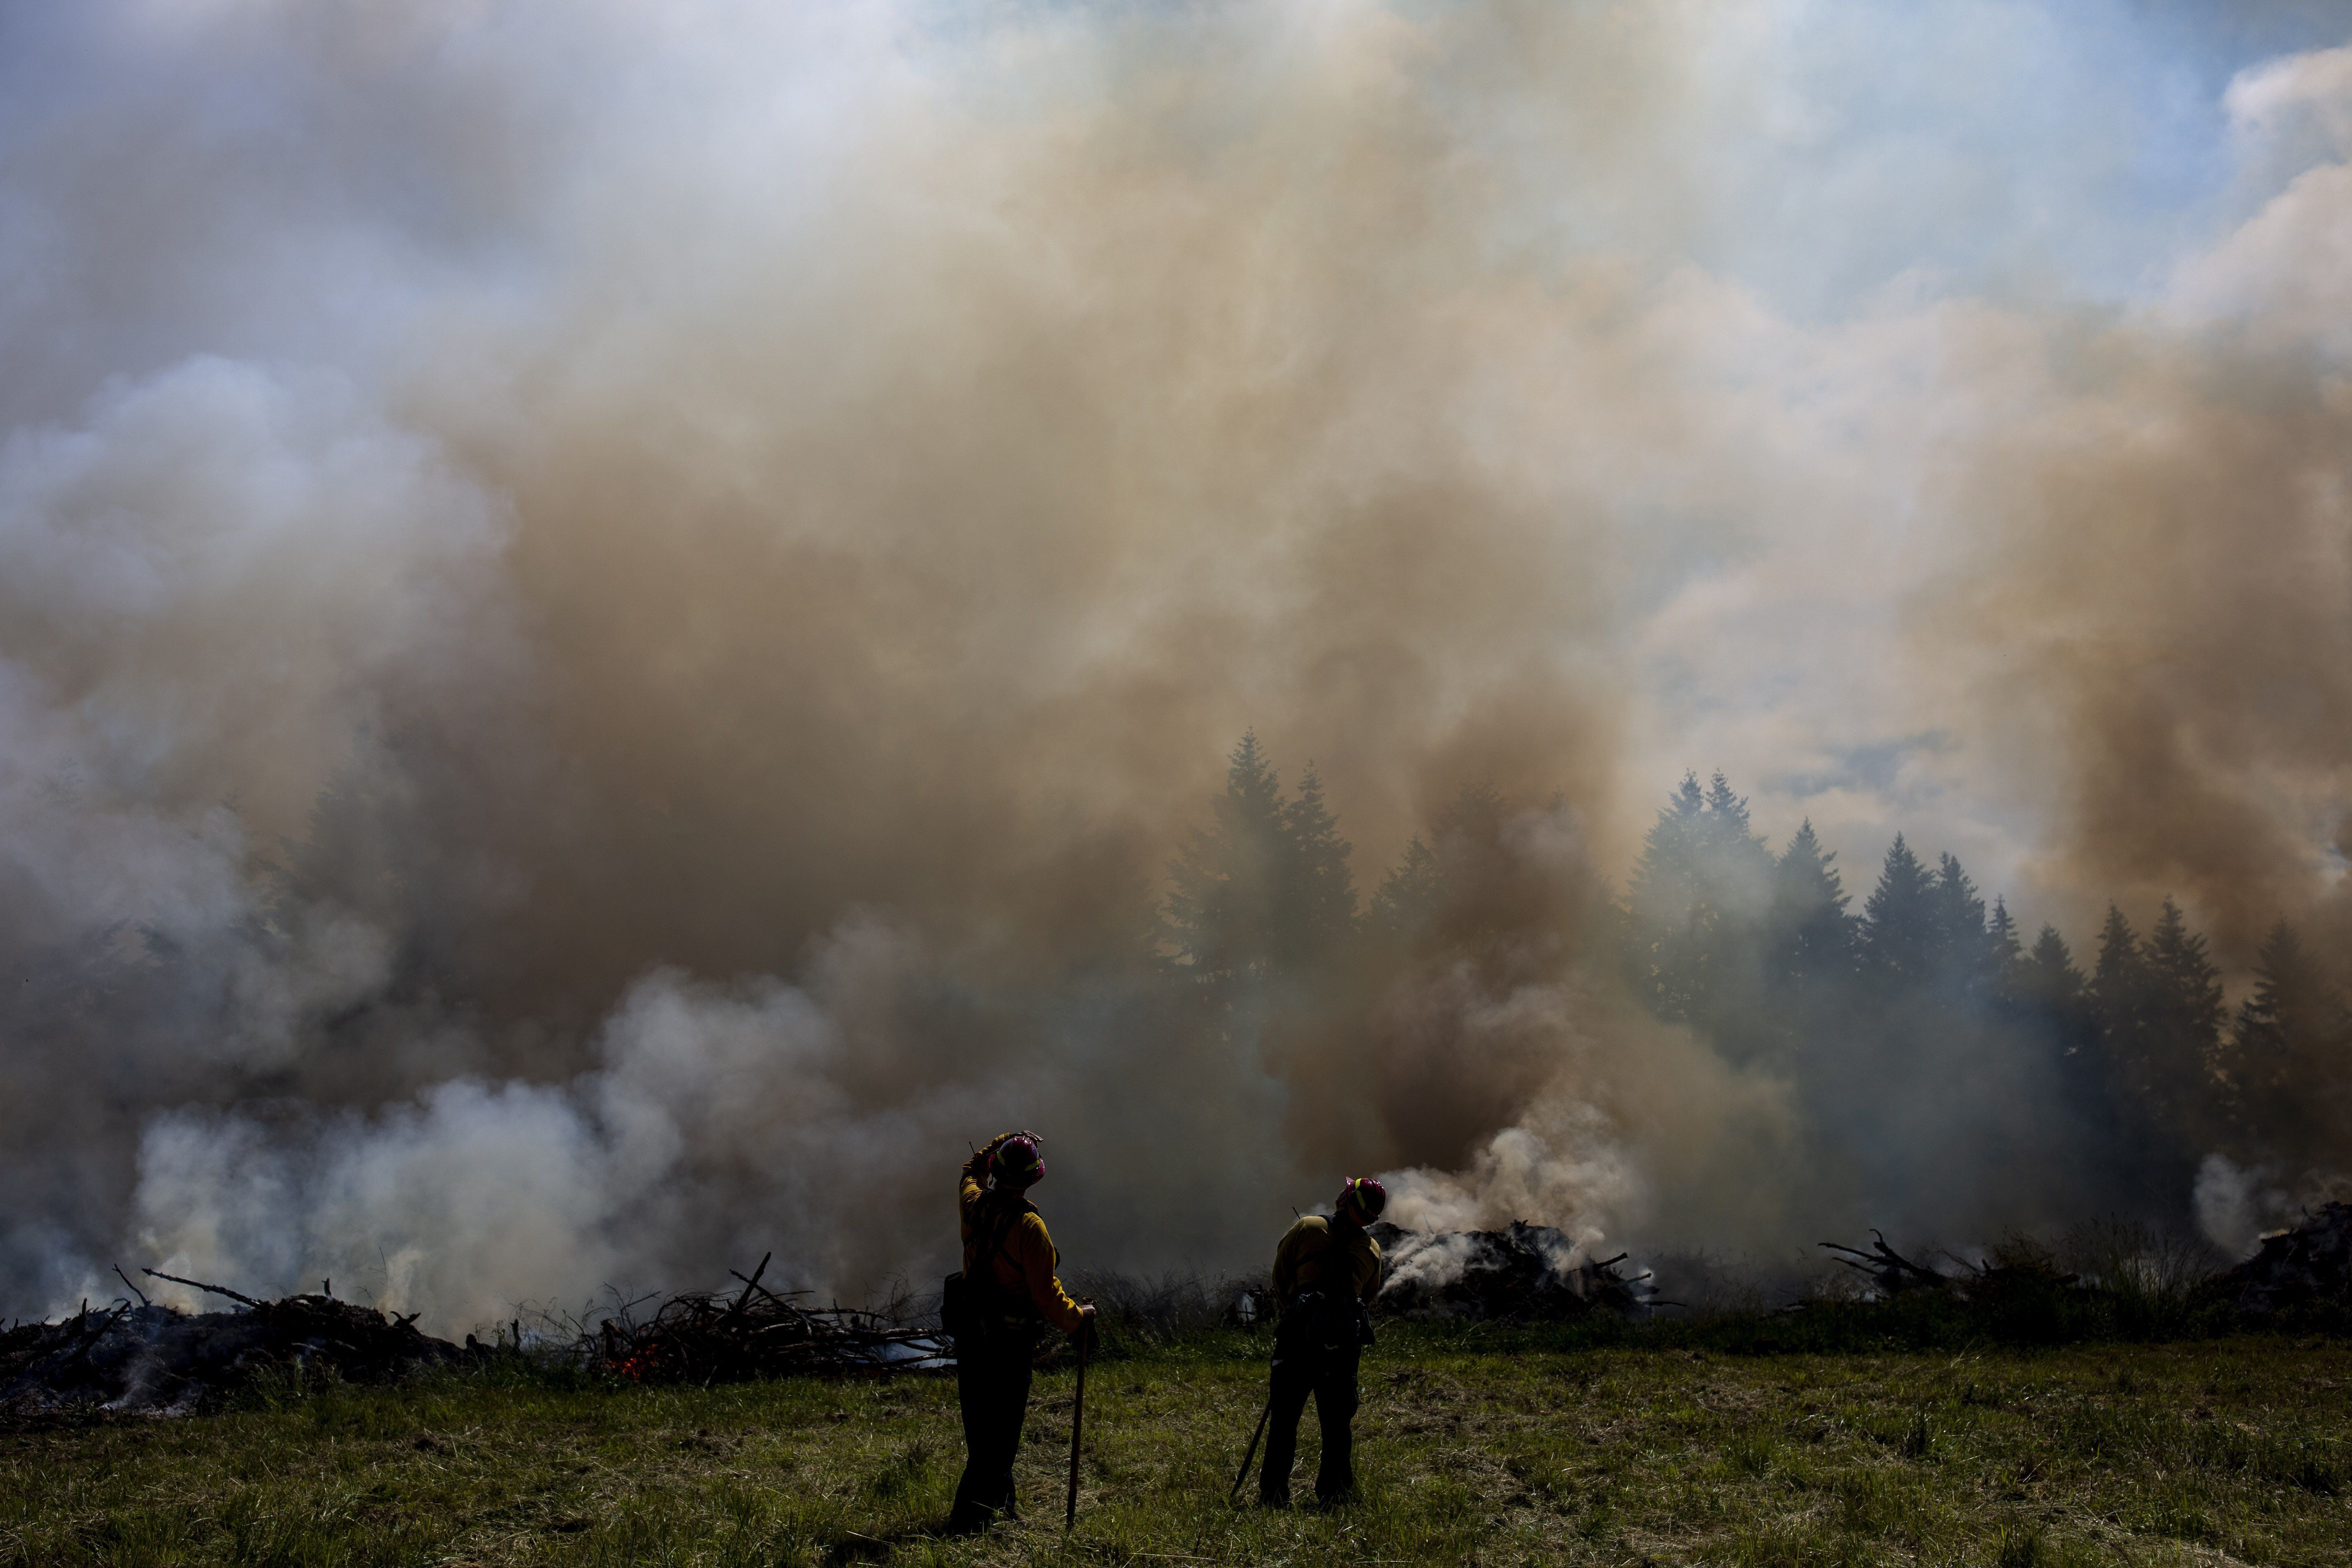 Firefighters brace for tough Pacific Northwest wildfire